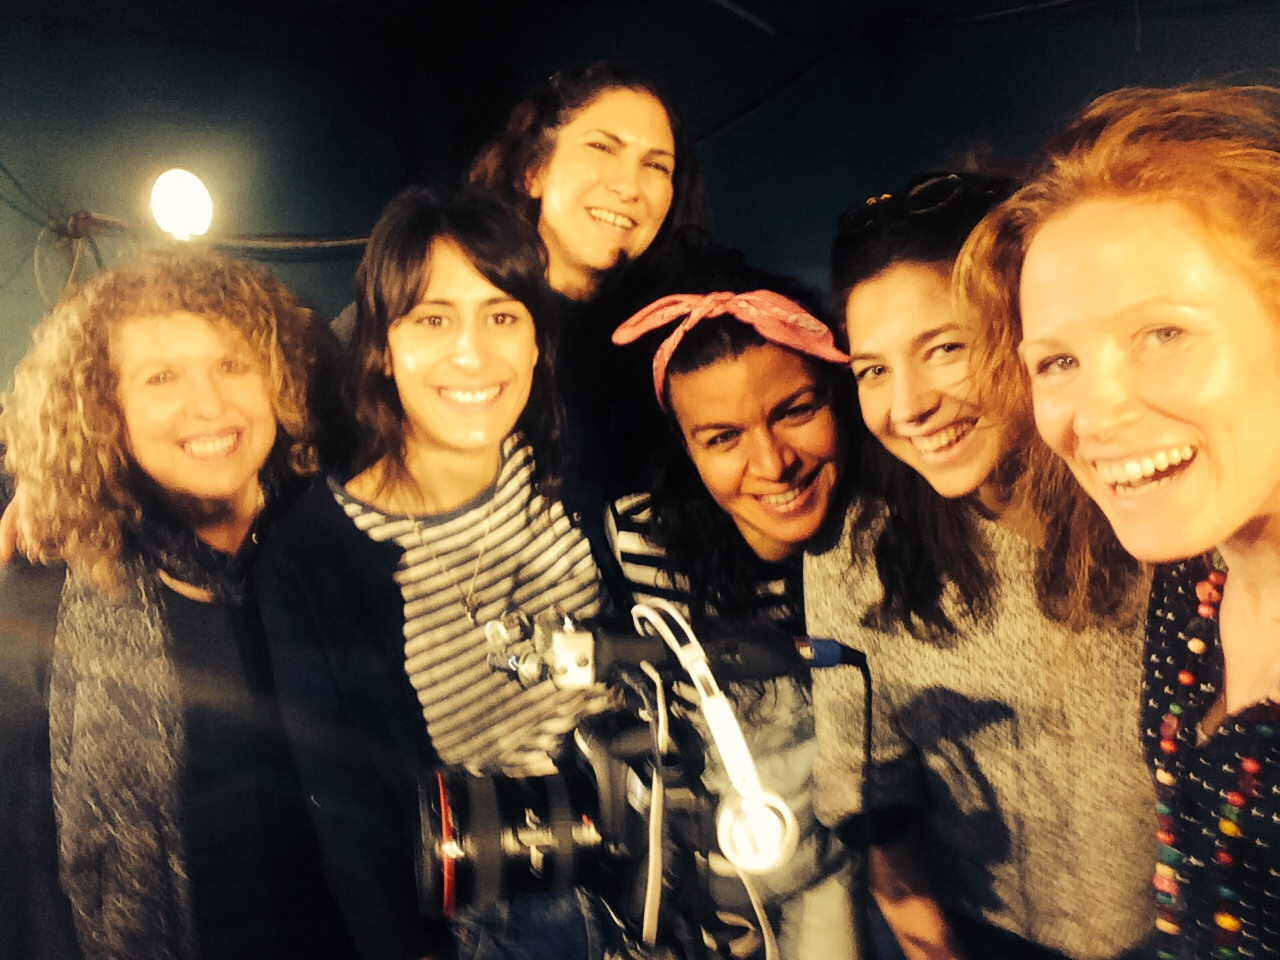 L-R Royal Court's   Elyse Dodgson,   actress   Shereen Martin,   filmmaker   Maya Sanbar ,  actress   Sirin Saba,   theatre director   Caitlin Mcleod   and filmmaker   Georgie Weedon   at the Royal Court London on the stage of   FIREWORKS   March 2015